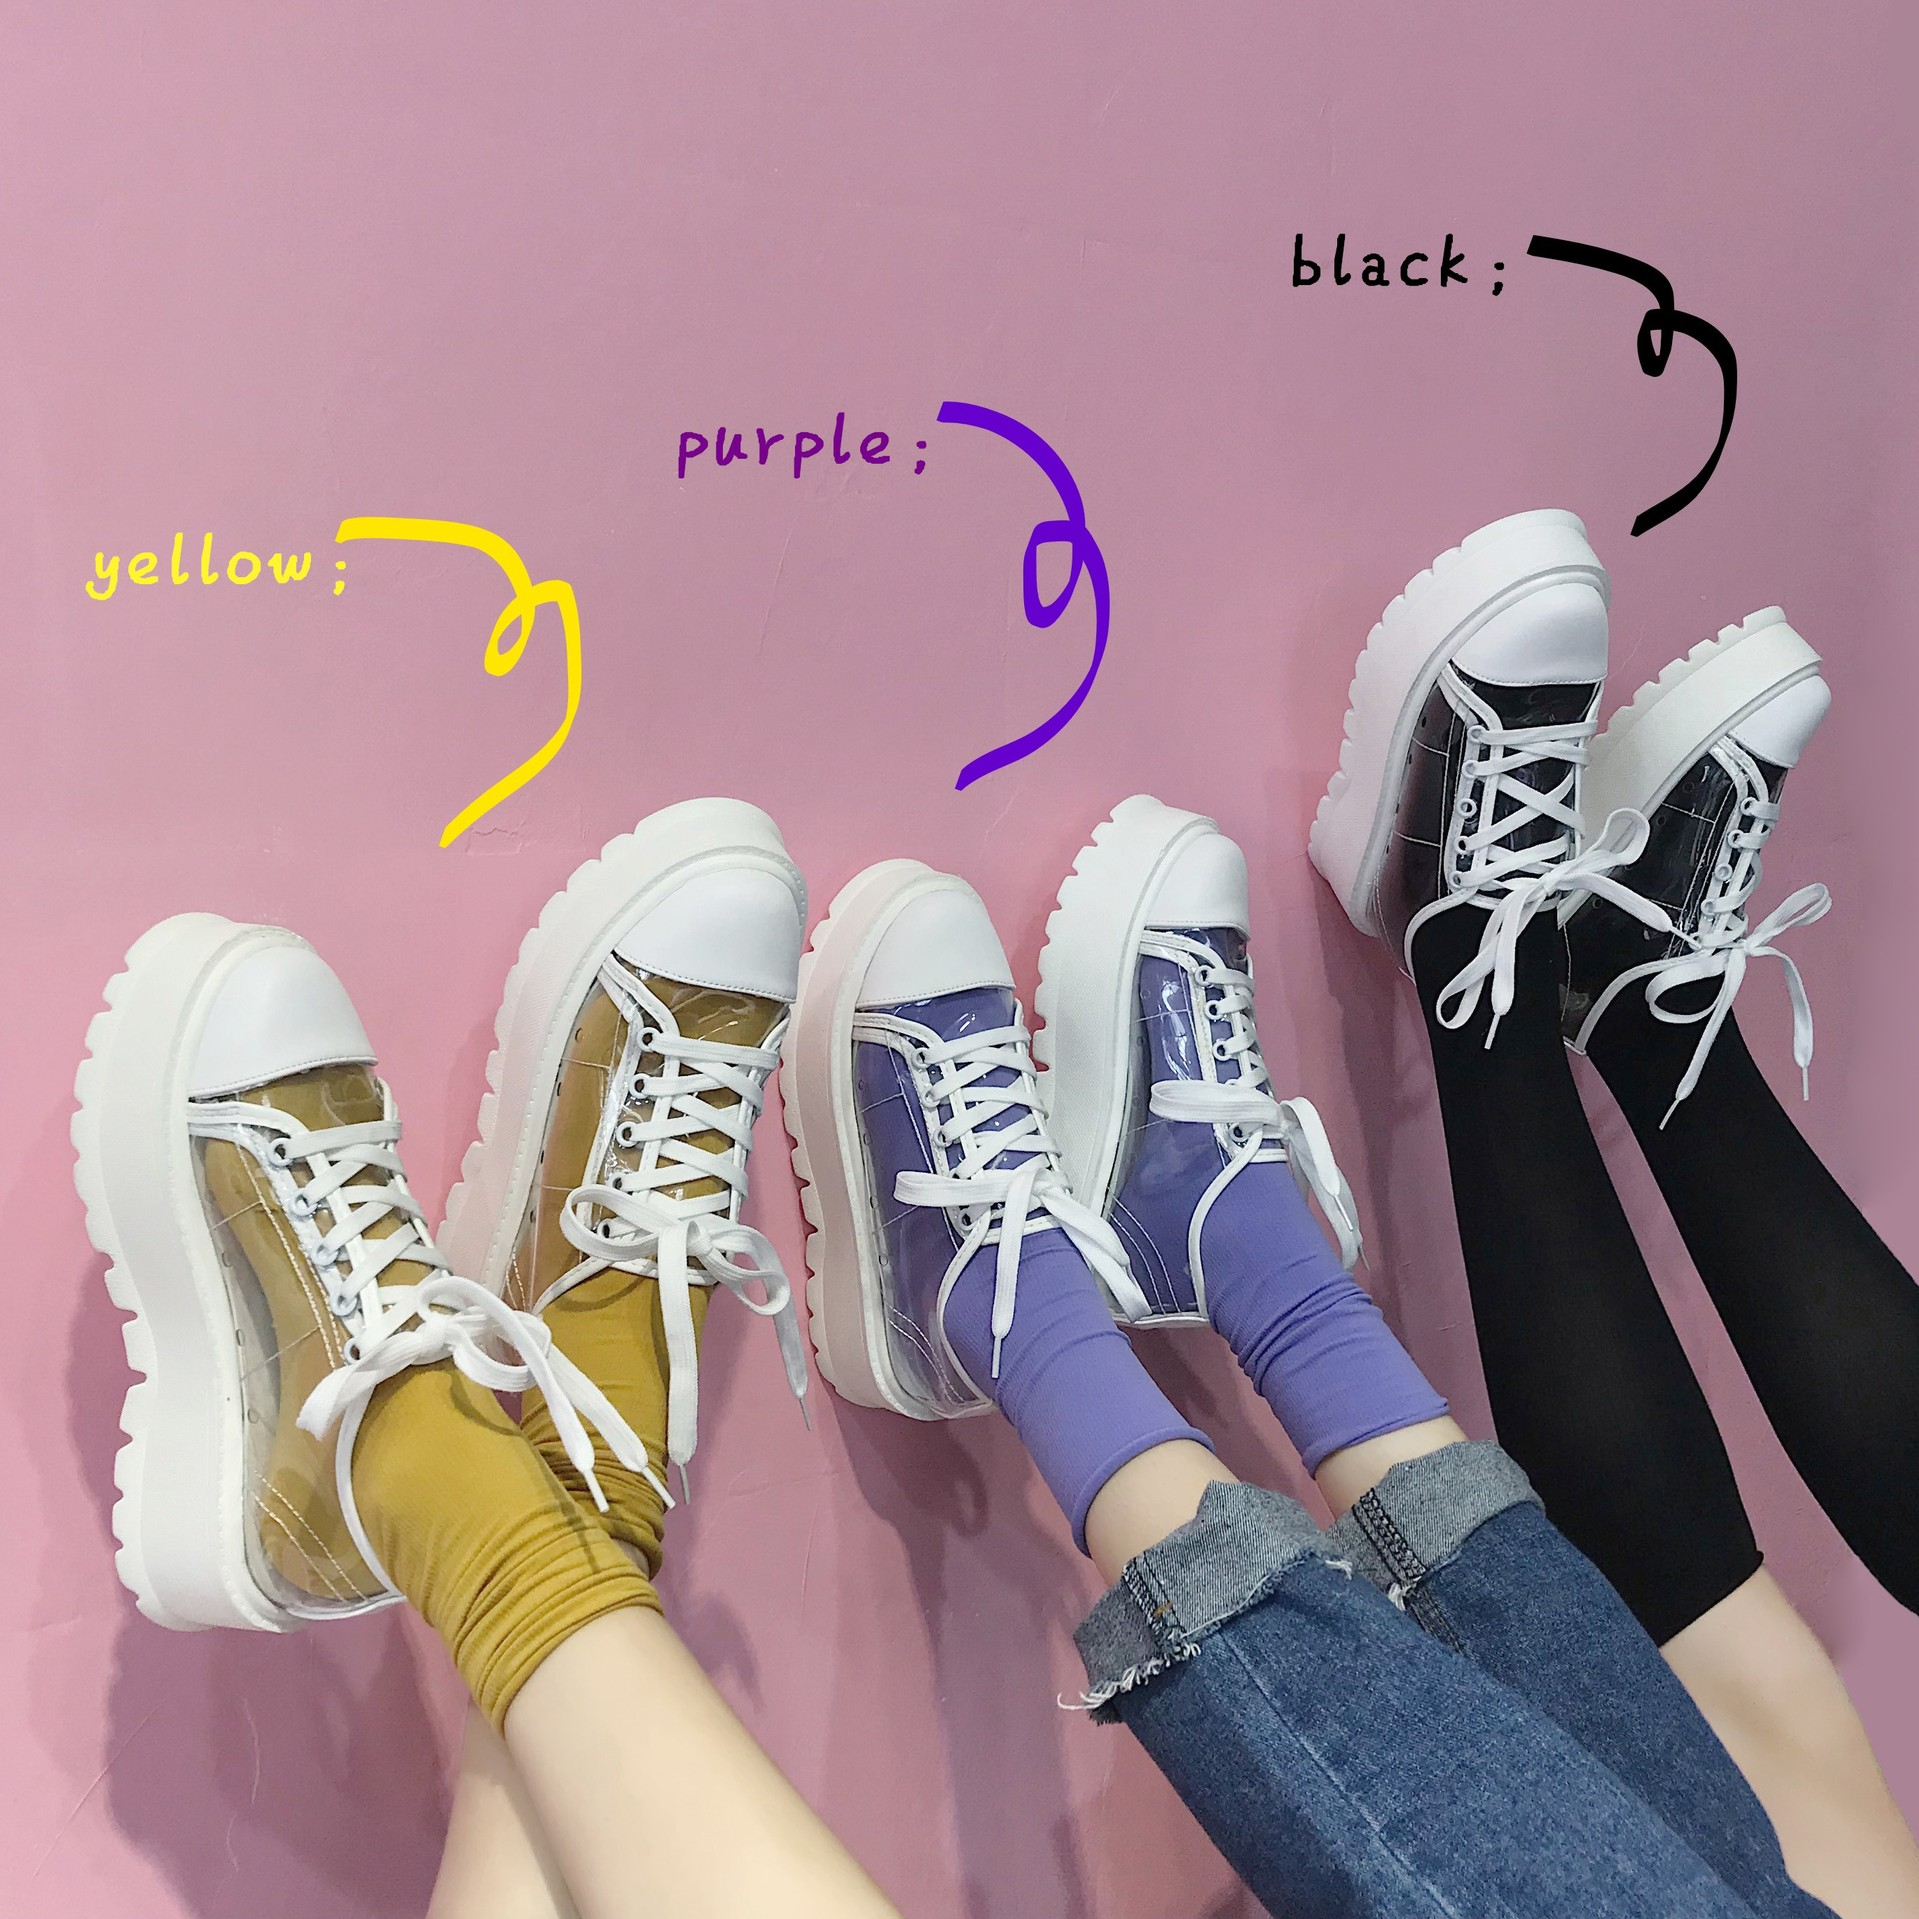 SWYIVY Women's Sneaker Platform Transparent New Platform Casual Shoes Female Student Fashion Canvas Shoes 2018 Summer Sneakers